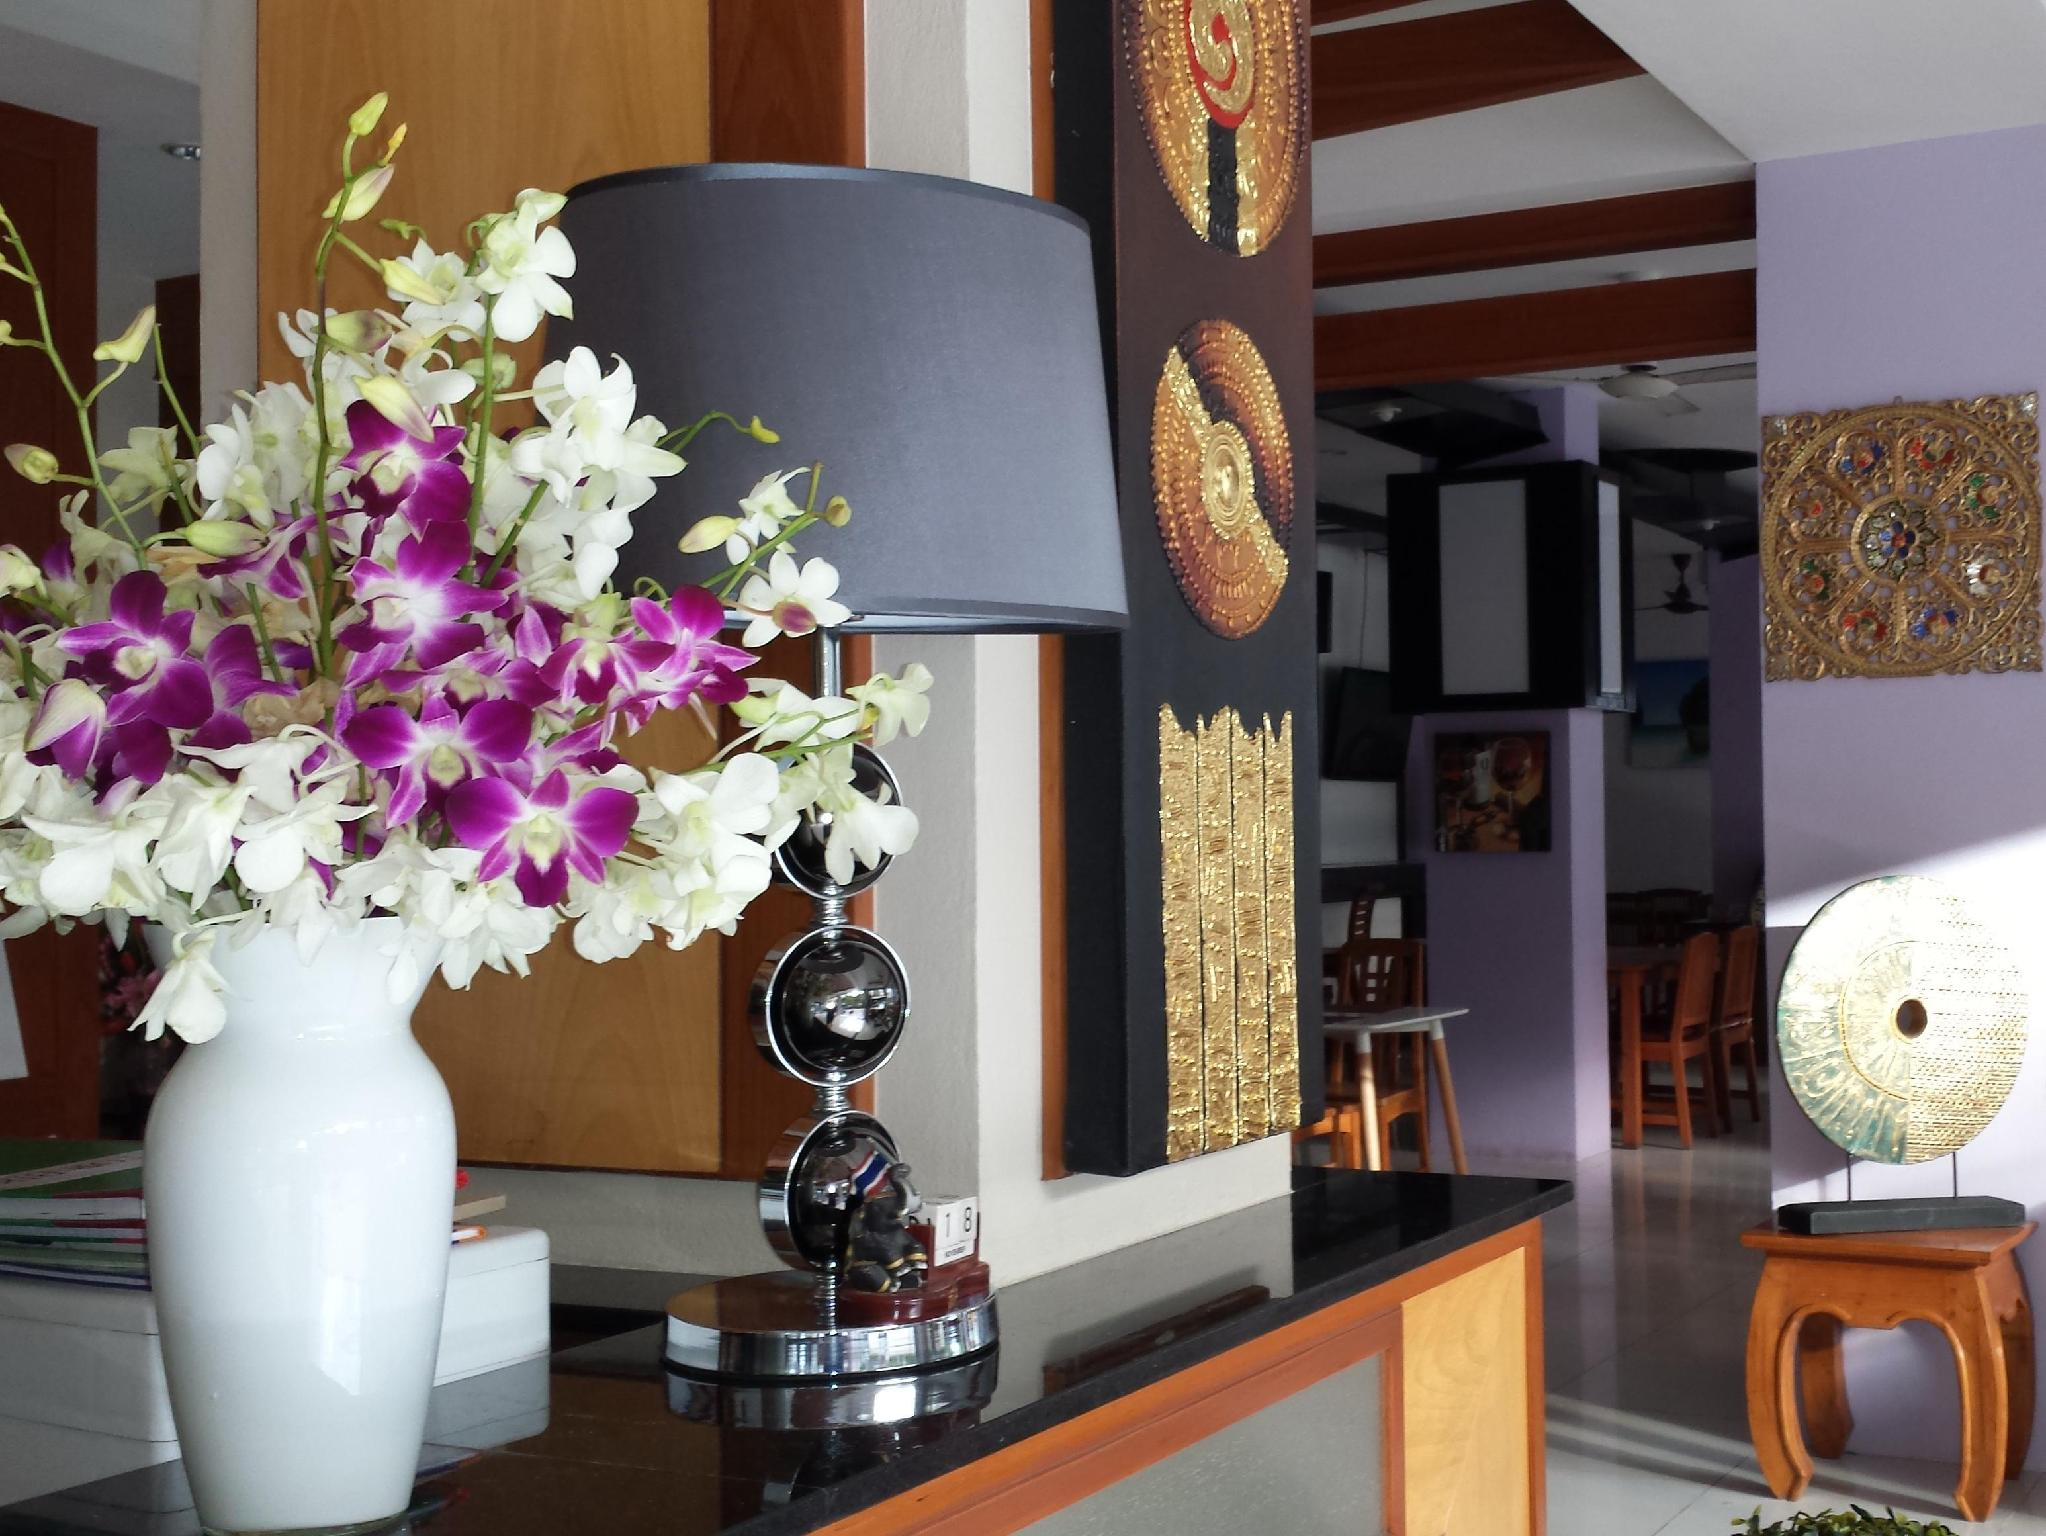 Andaman Phuket Hotel by Sunny Group